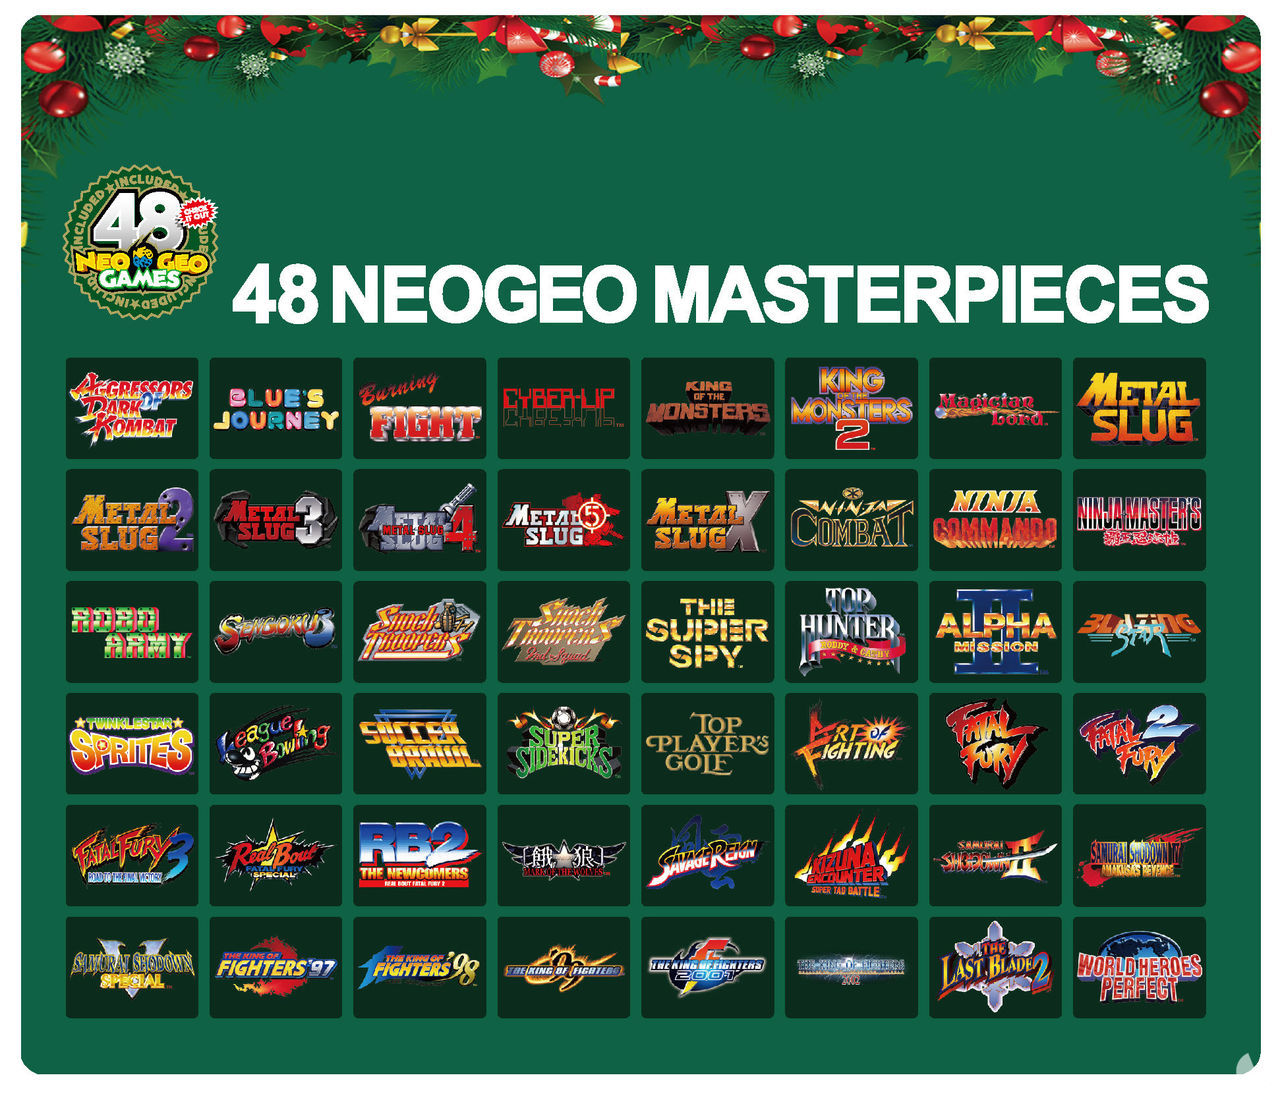 Neo Geo Mini released a special edition of the console for Christmas